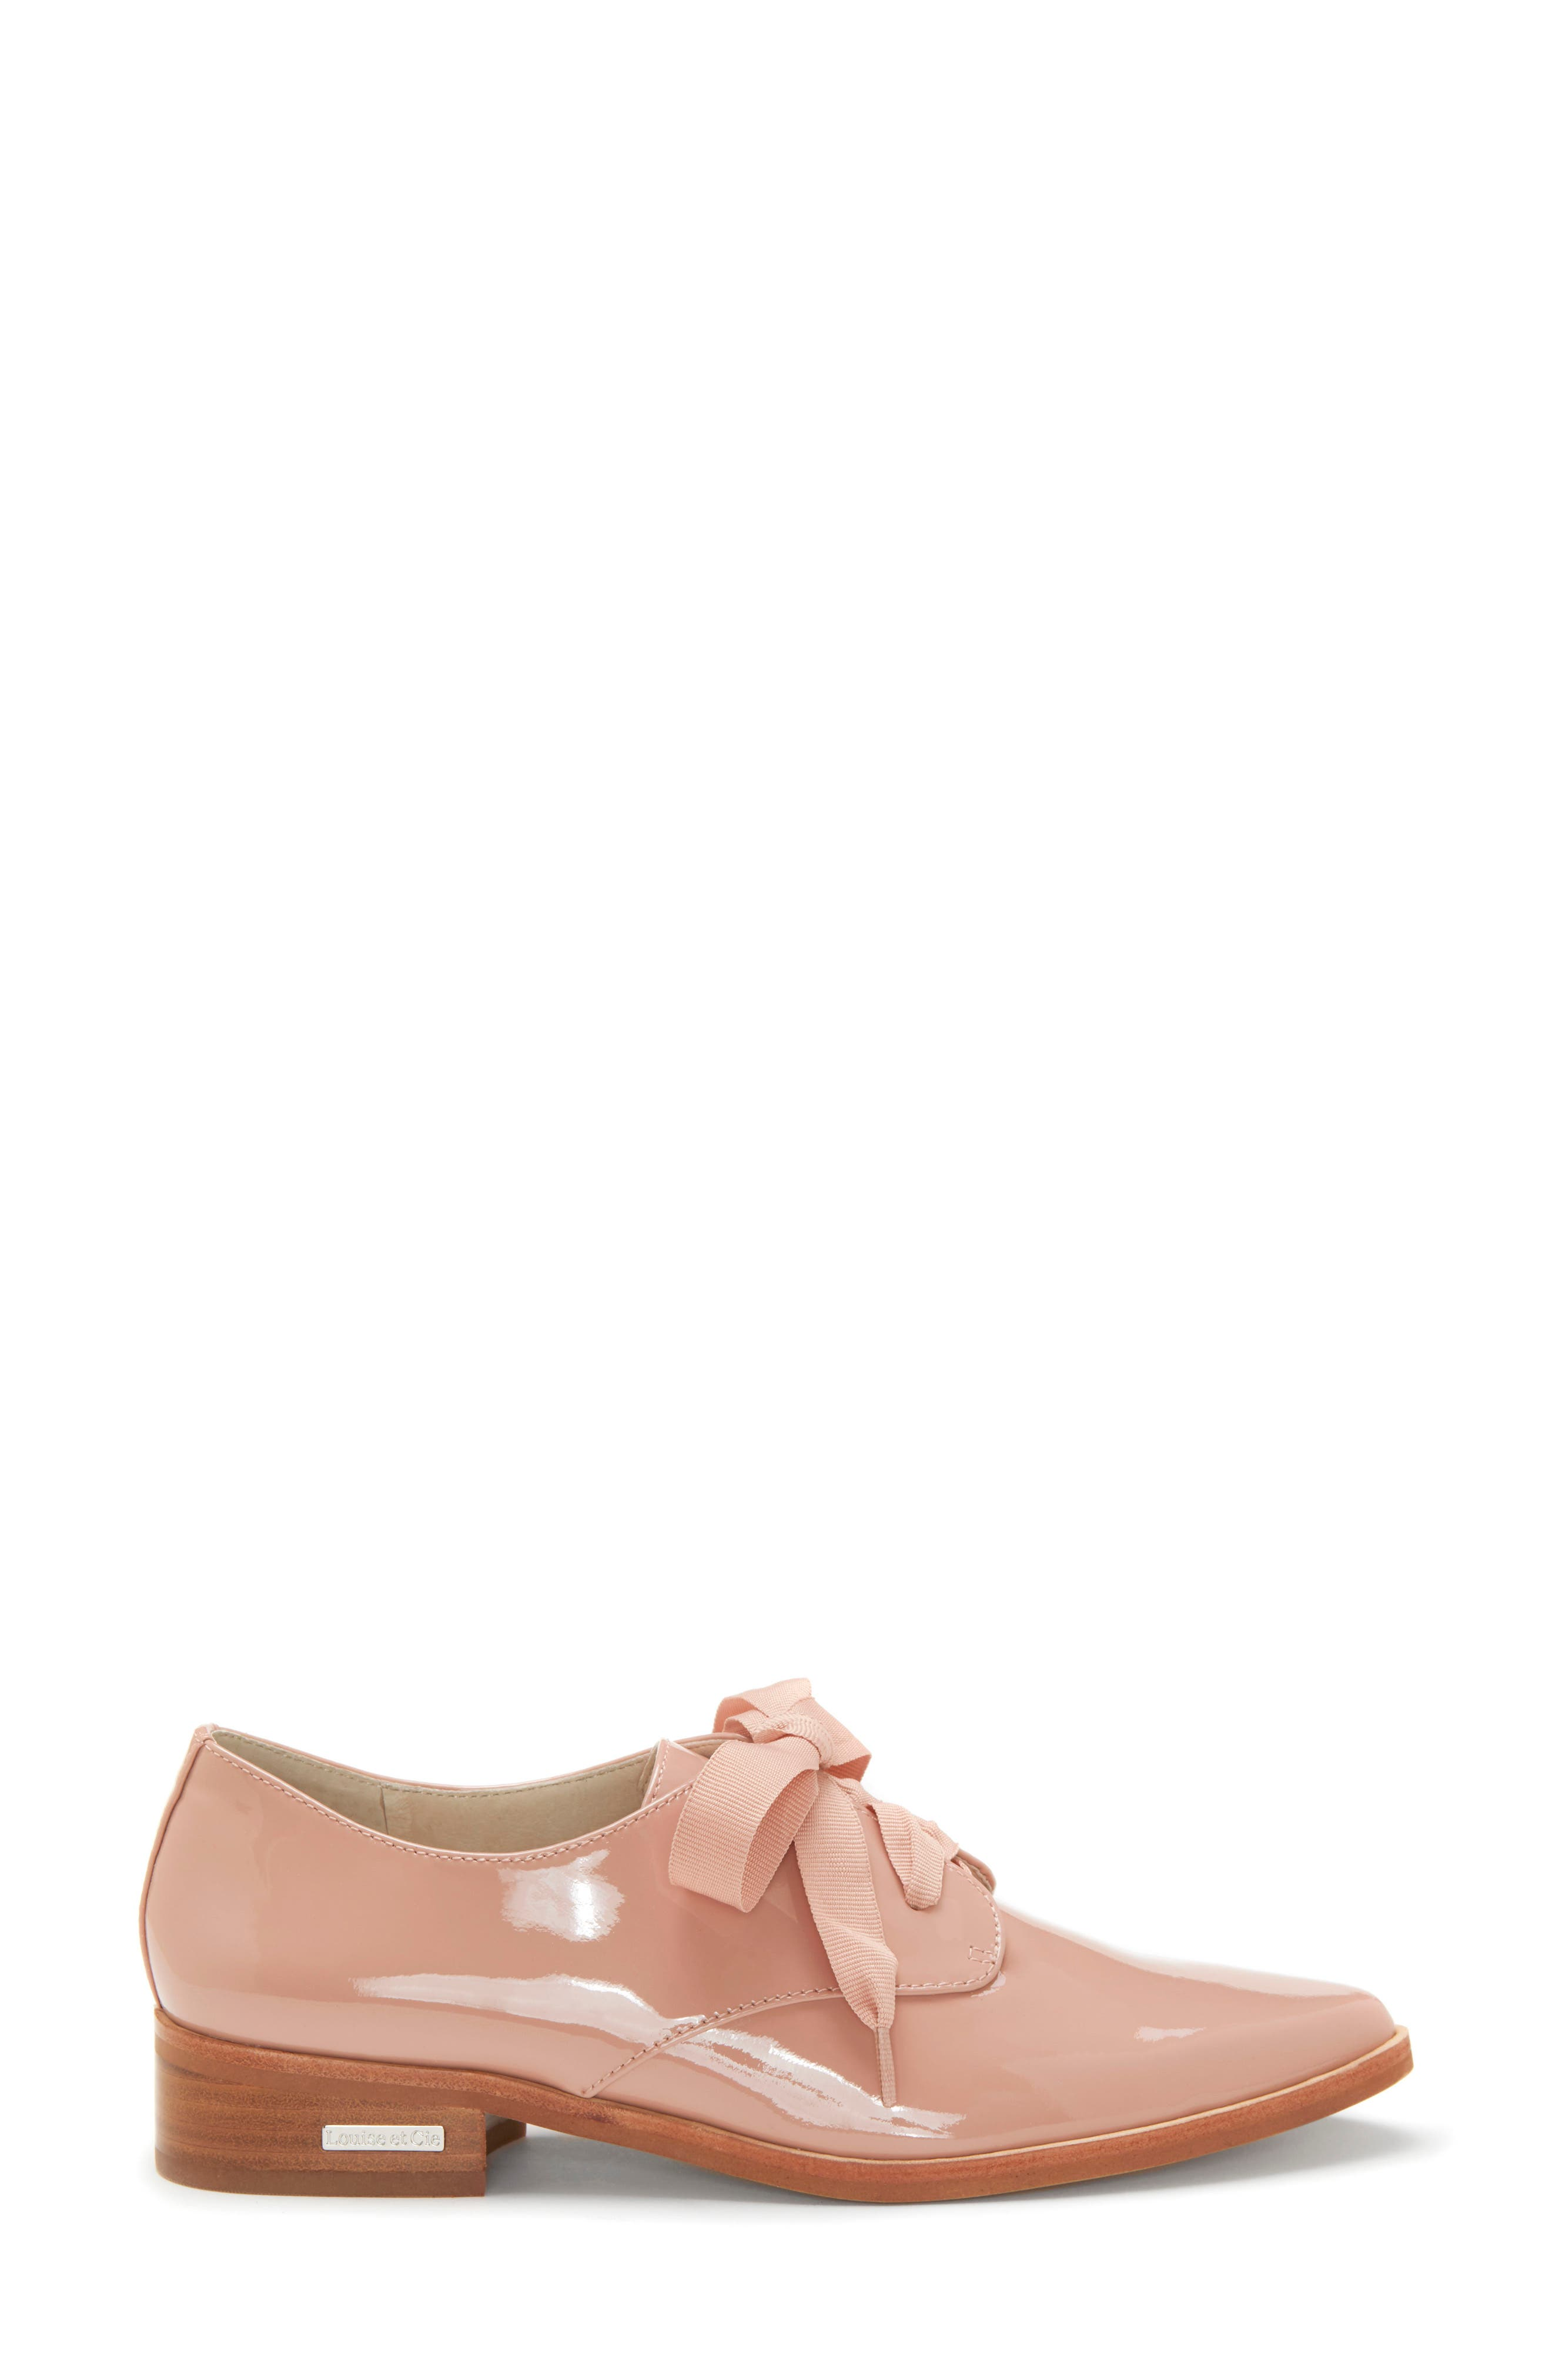 LOUISE ET CIE, Adwin Almond Toe Oxford, Alternate thumbnail 3, color, FOUNDATION PATENT